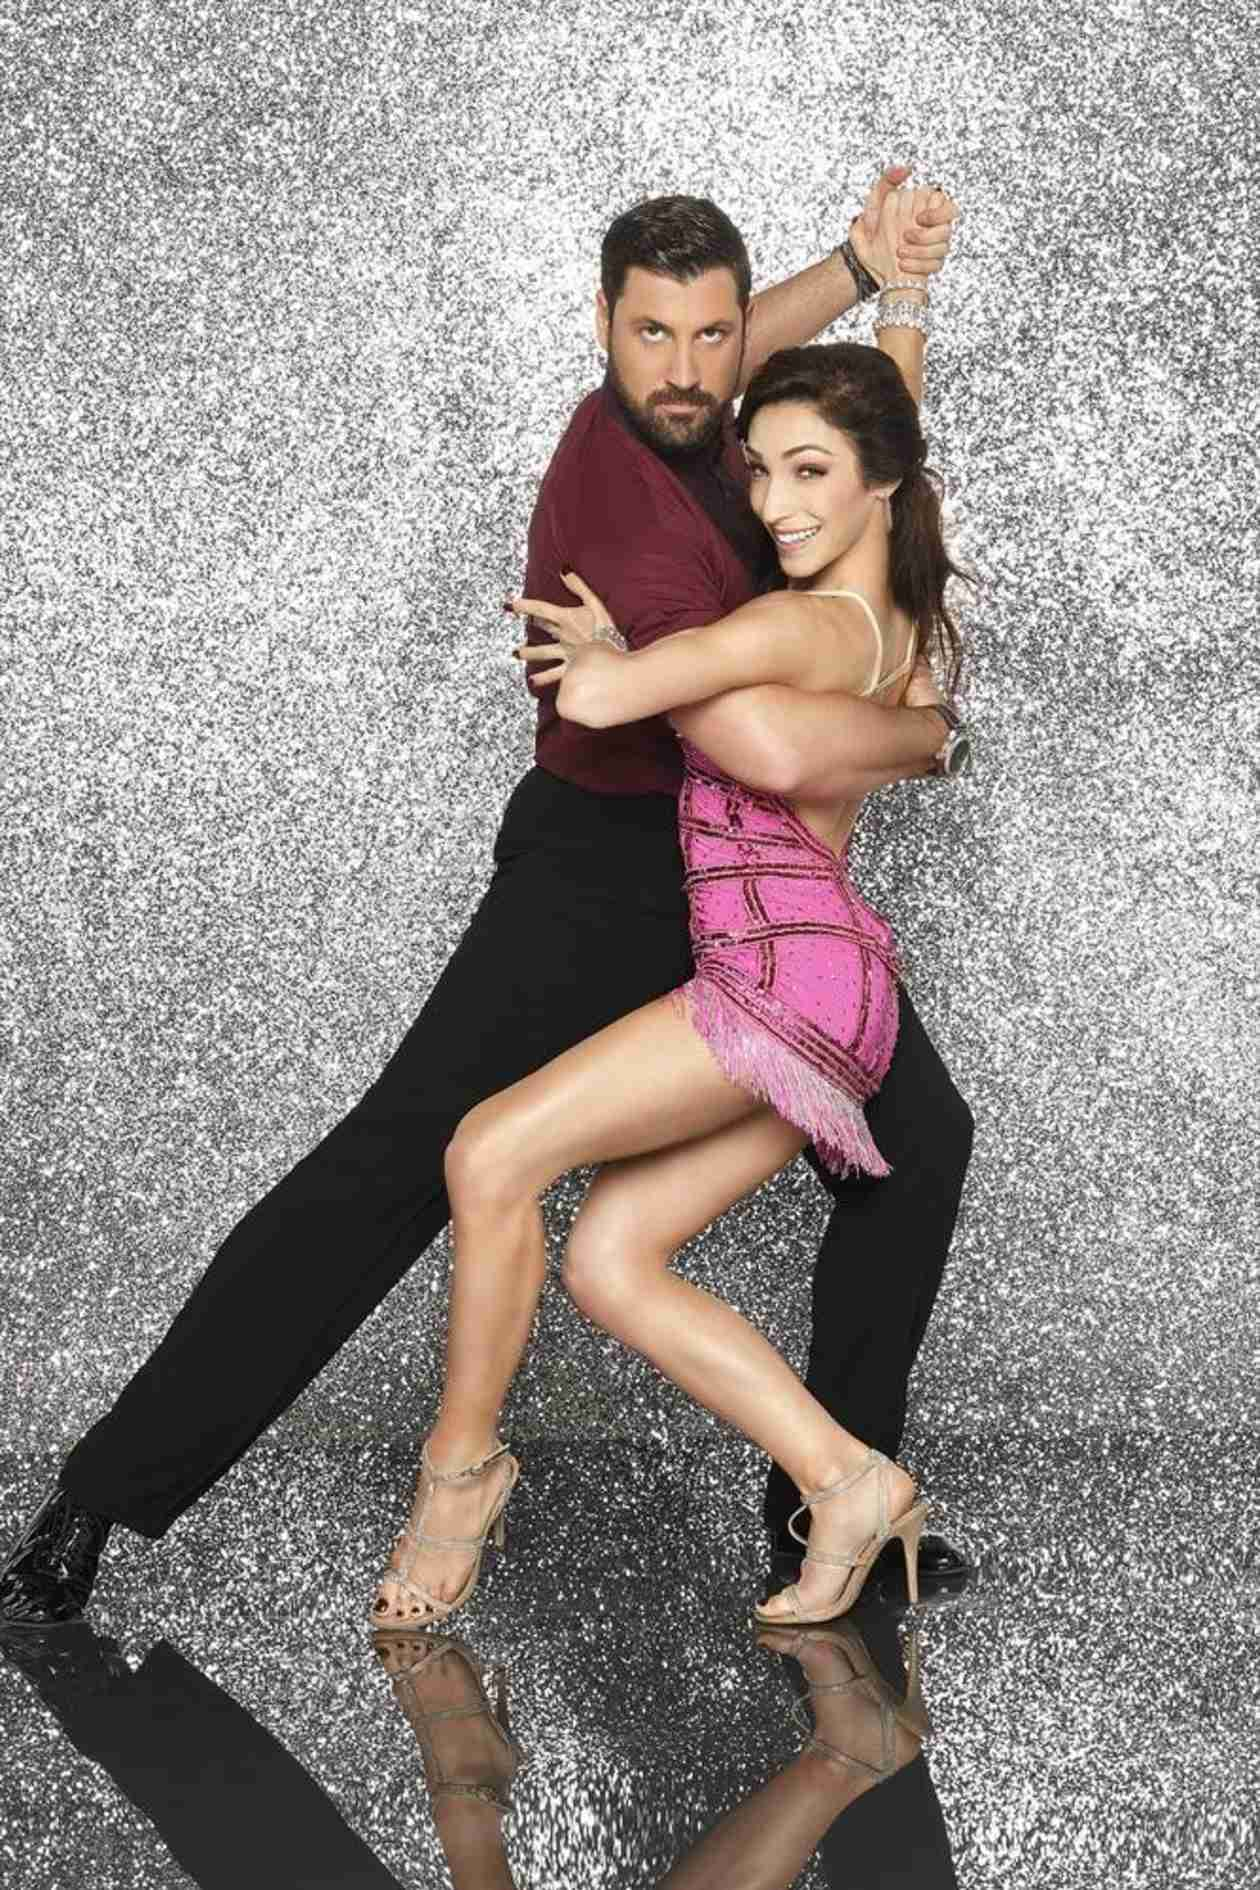 Dancing With the Stars 2014: Is This Maksim Chmerkovskiy's Year to Win?